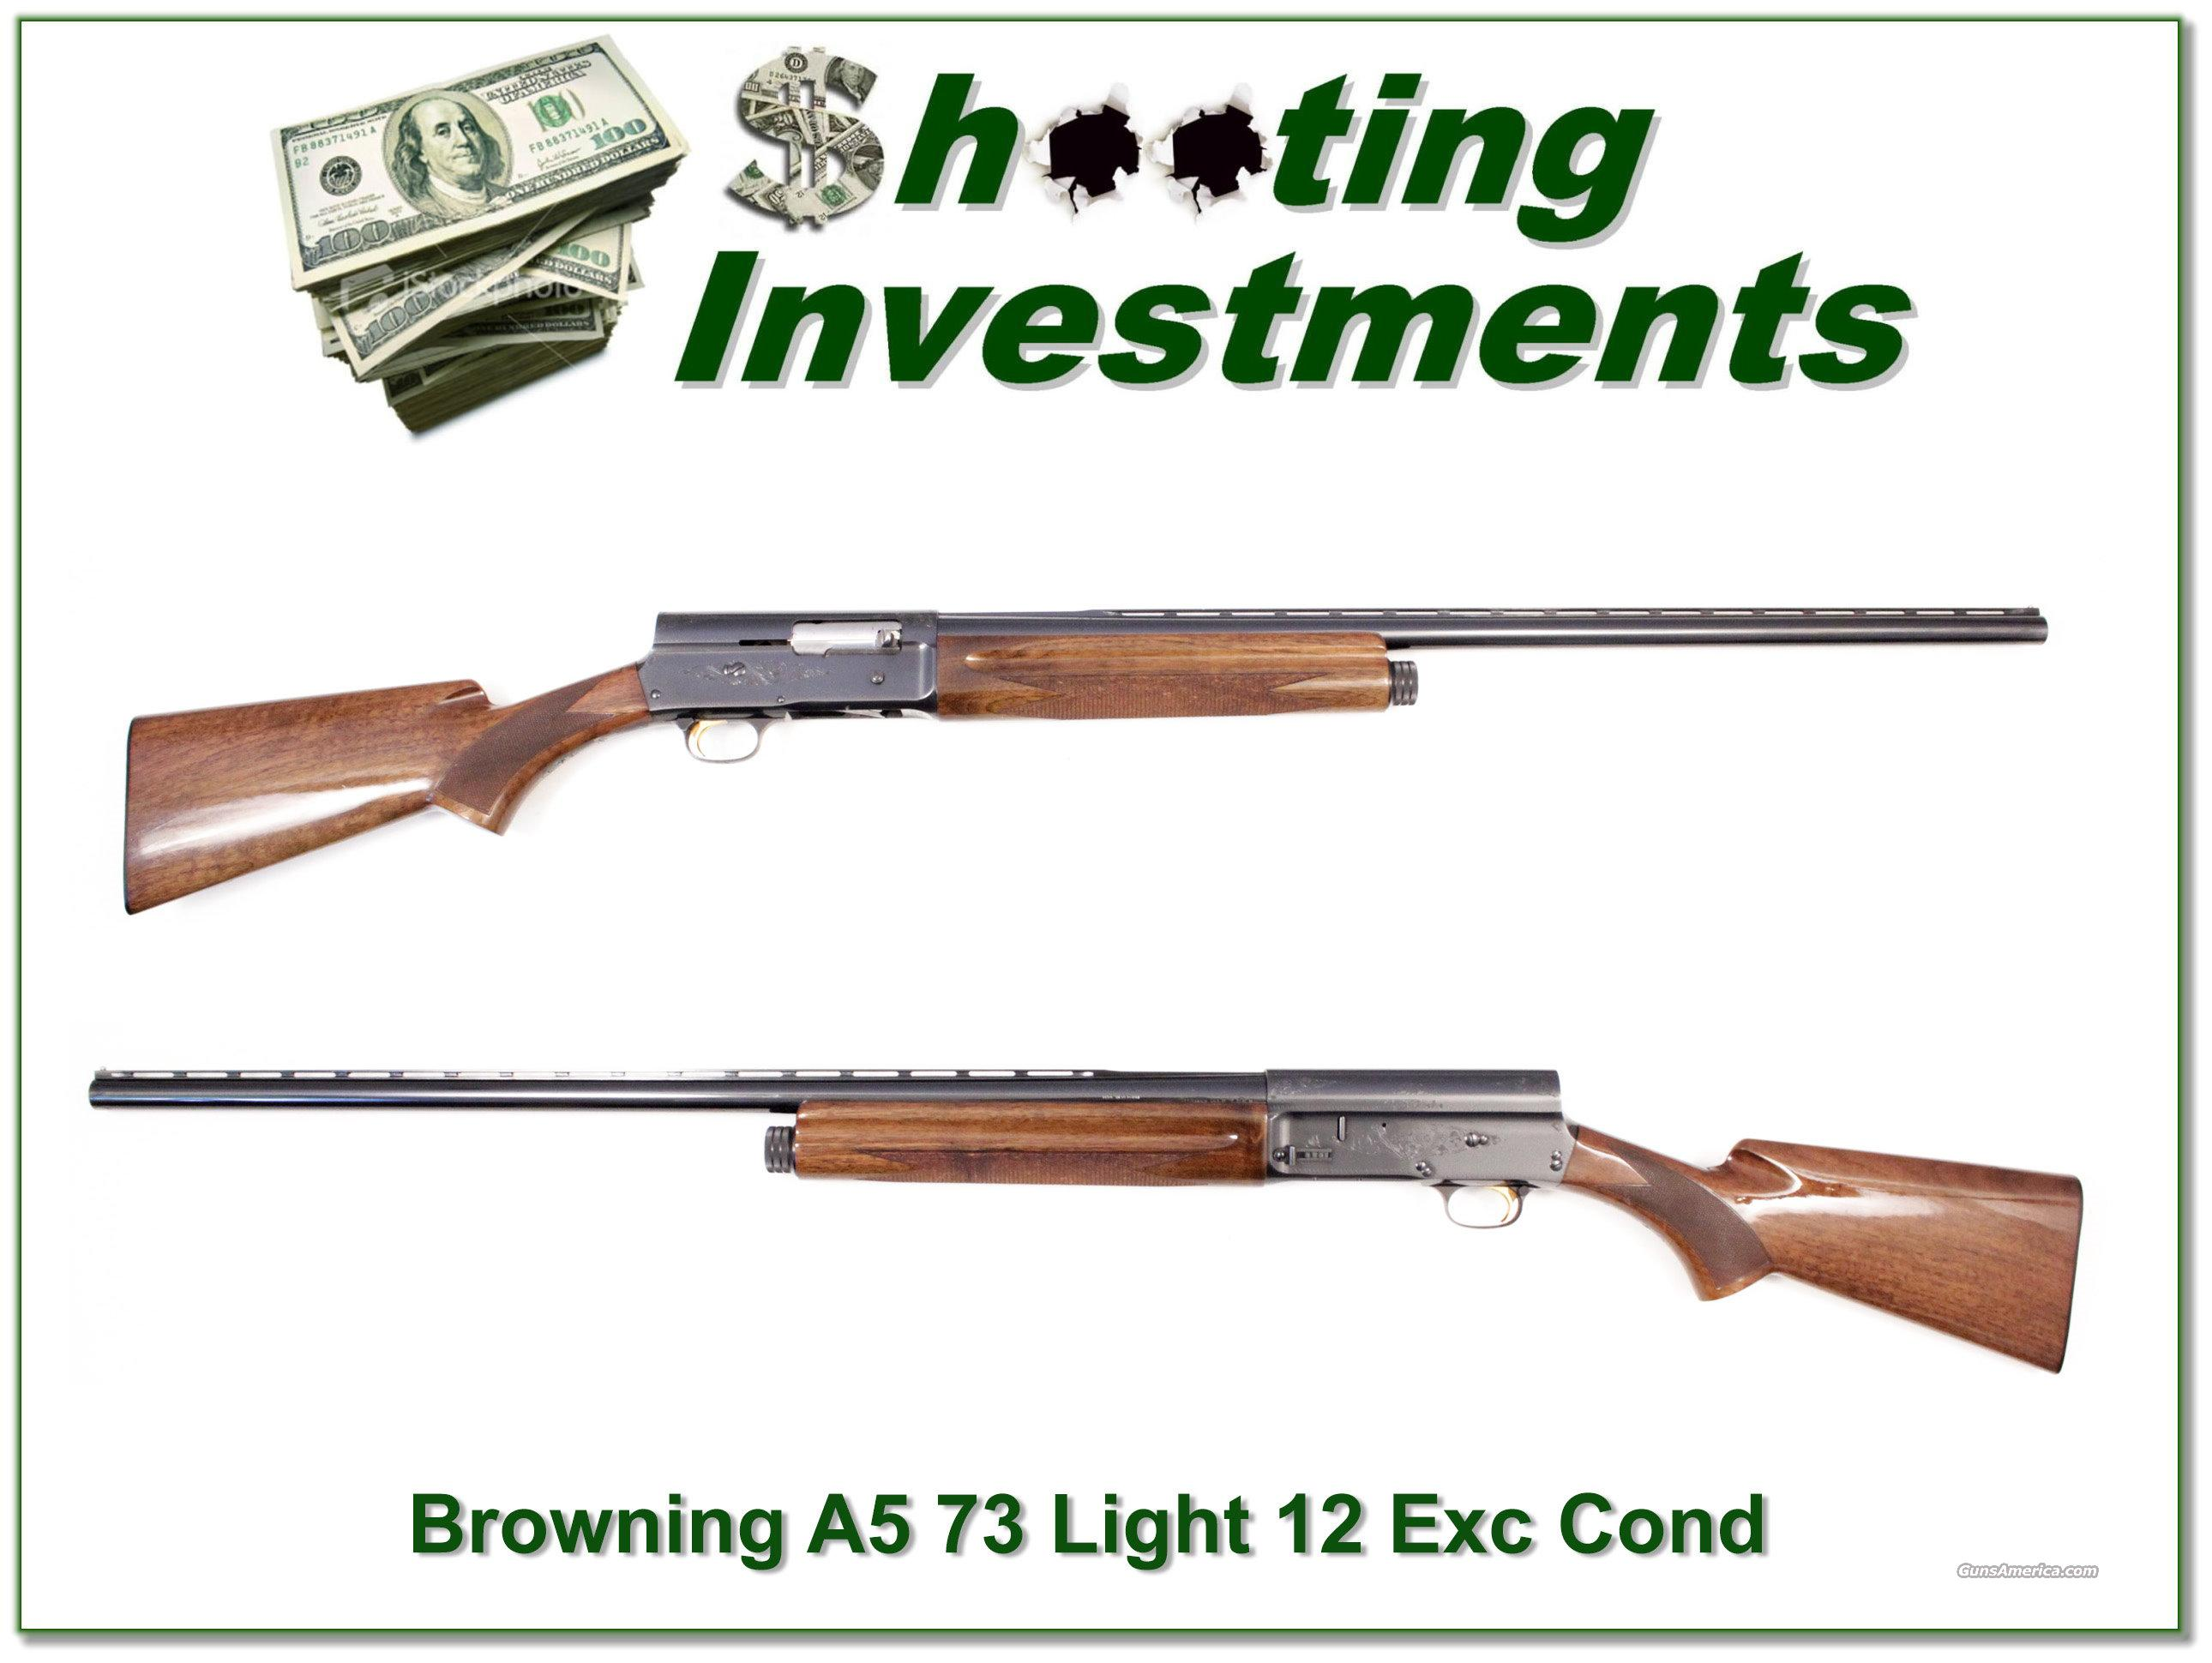 Browning A5 Light 12 73 Belgium Exc Cond  Guns > Shotguns > Browning Shotguns > Autoloaders > Hunting